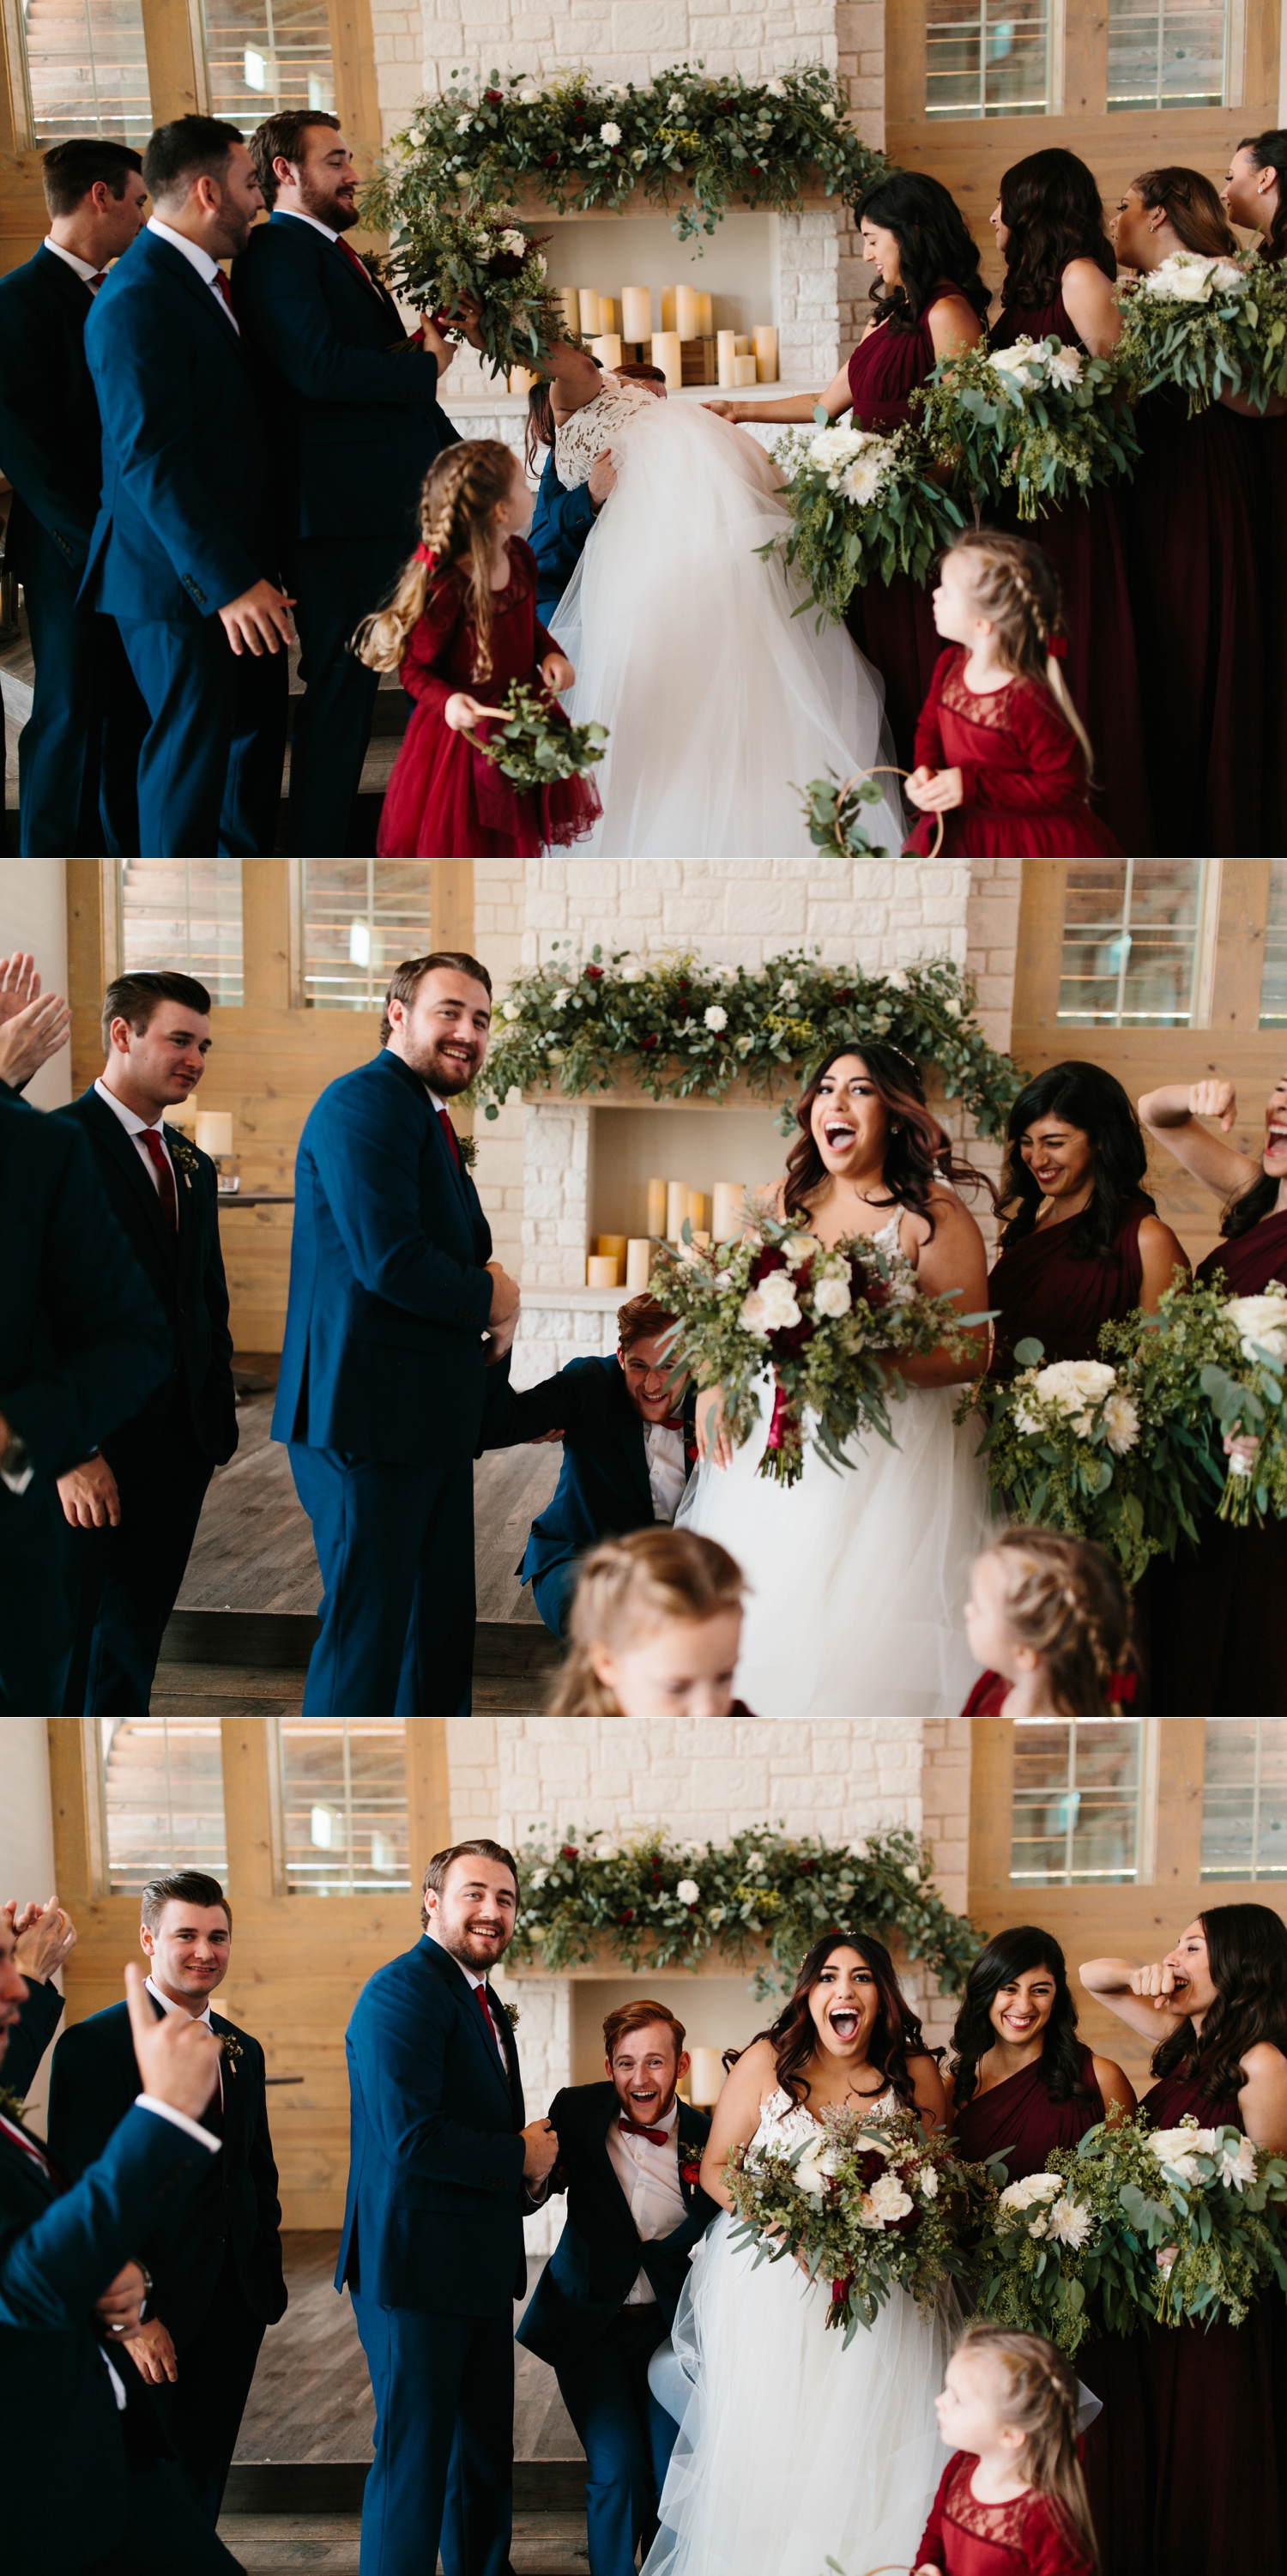 Grant + Lysette | a vibrant, deep burgundy and navy, and mixed metals wedding at Hidden Pines Chapel by North Texas Wedding Photographer Rachel Meagan Photography 122